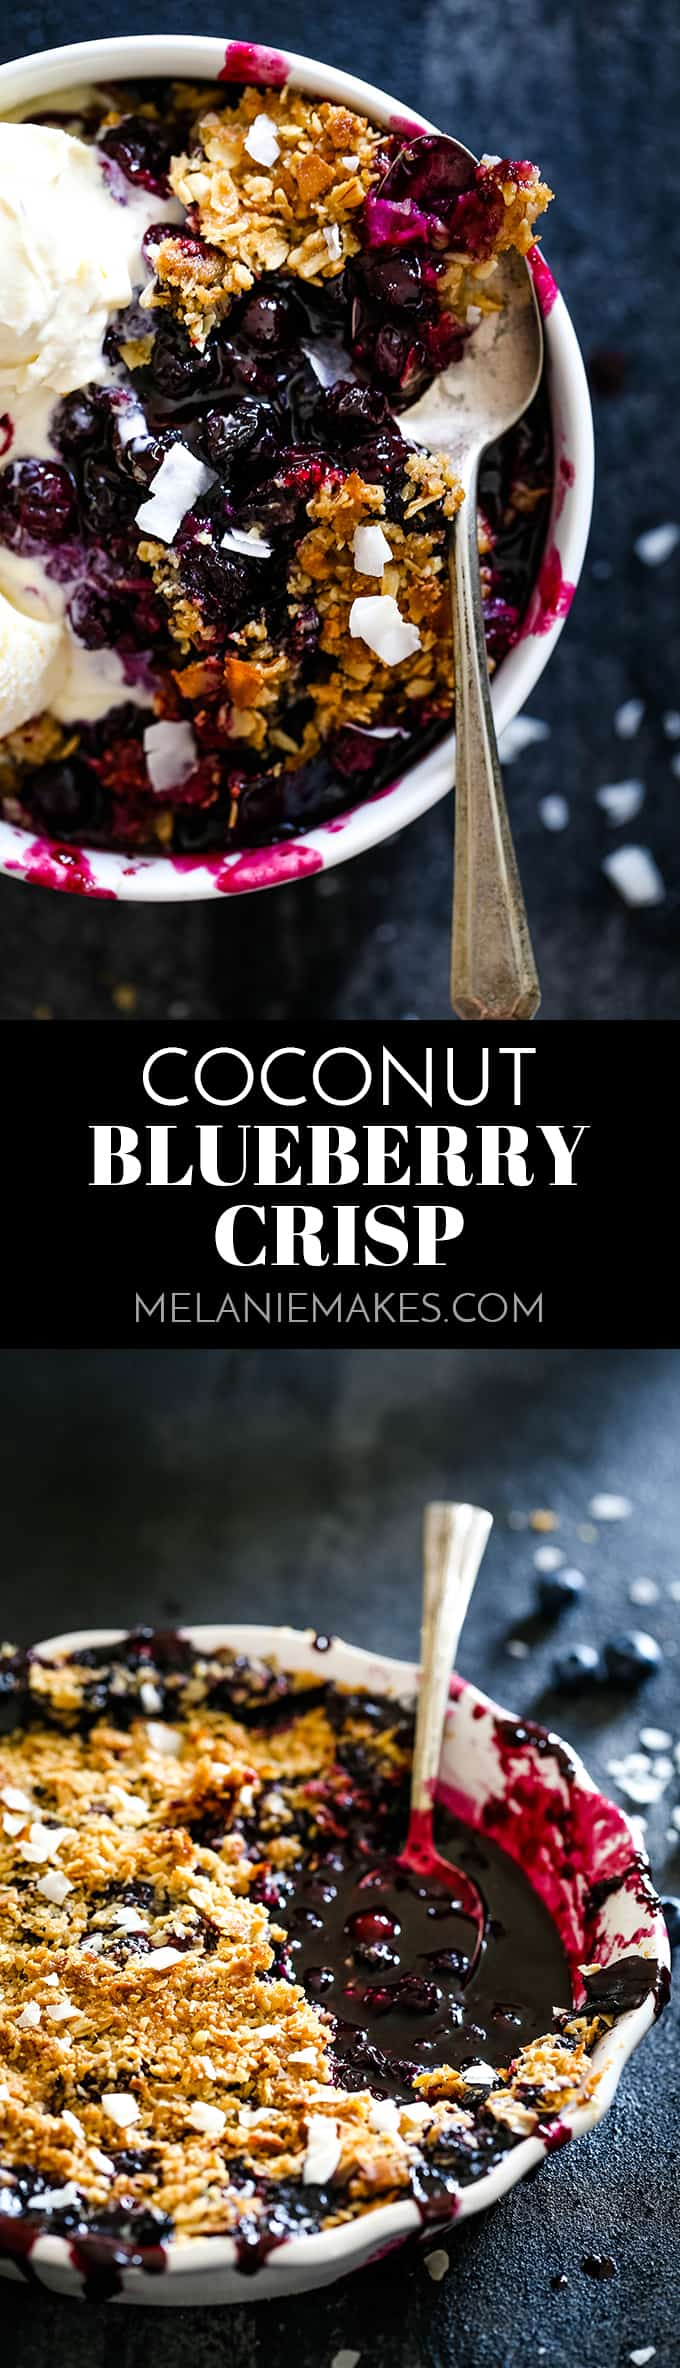 It takes just 15 minutes to prepare this delicious Coconut Blueberry Crisp featuring warm, bubbly blueberries capped by a crunchy cap of oats and coconut. #coconut #blueberry #fruitcrisp #dessertrecipes #easyrecipe #fruit